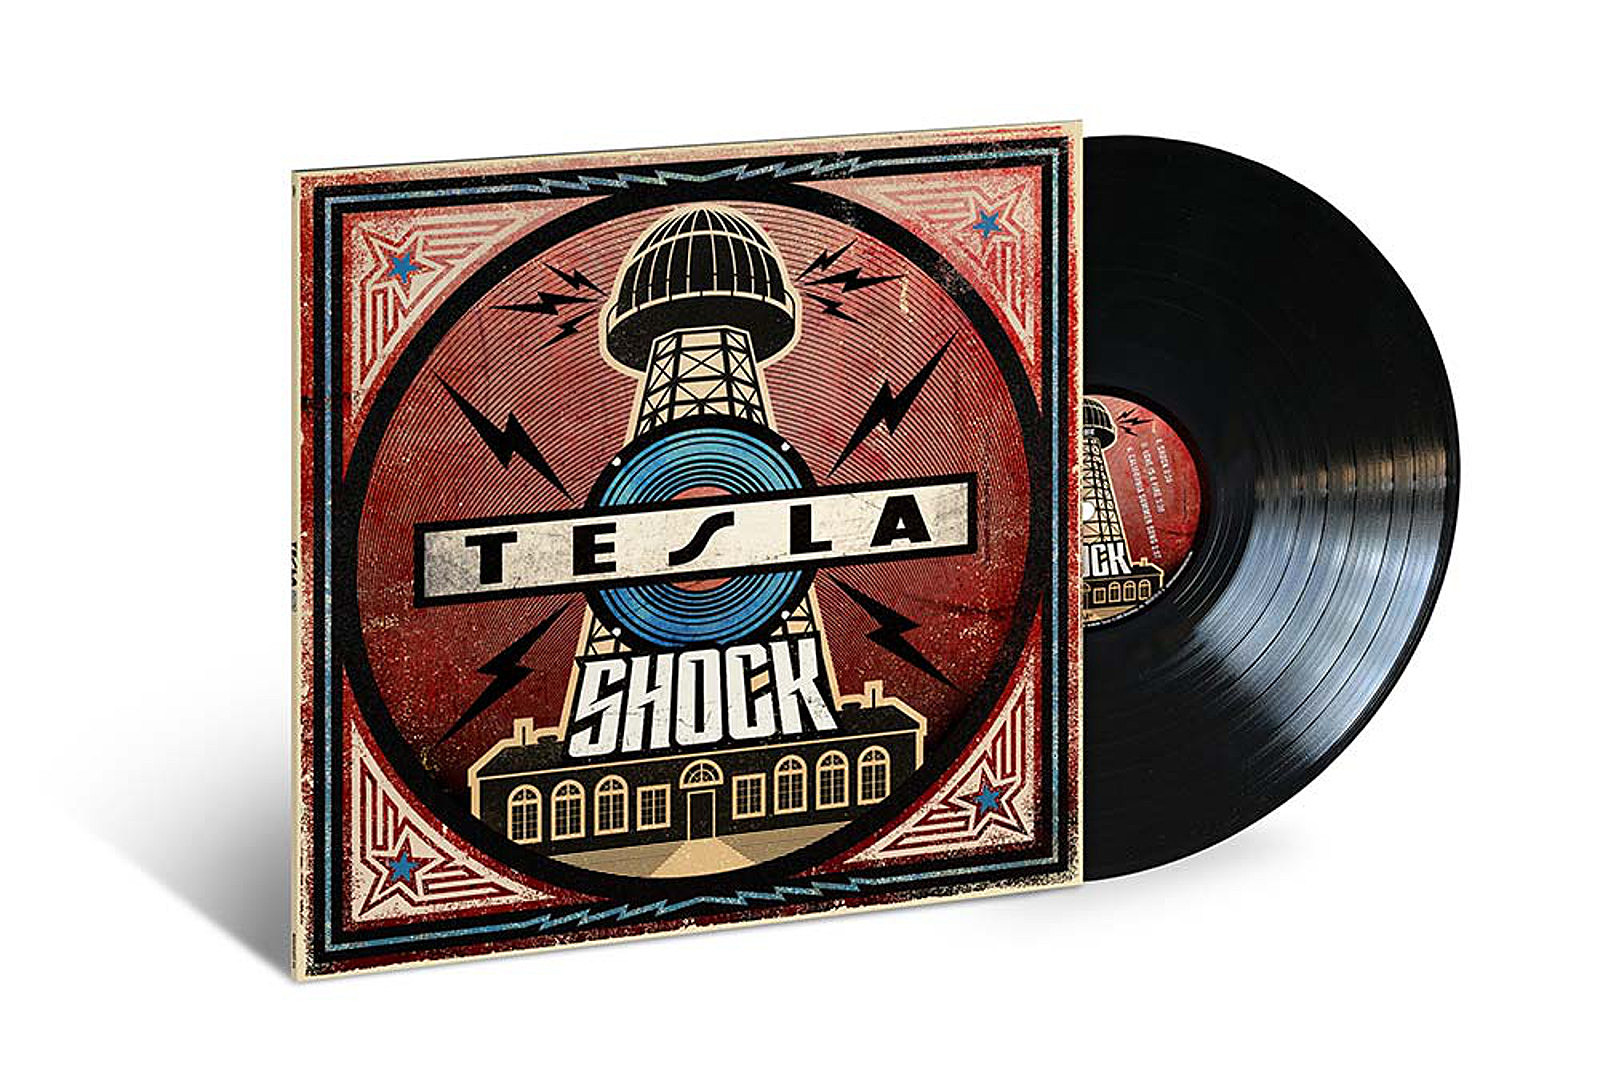 Tesla Announce 'Shock' LP, Produced by Def Leppard's Phil Collen